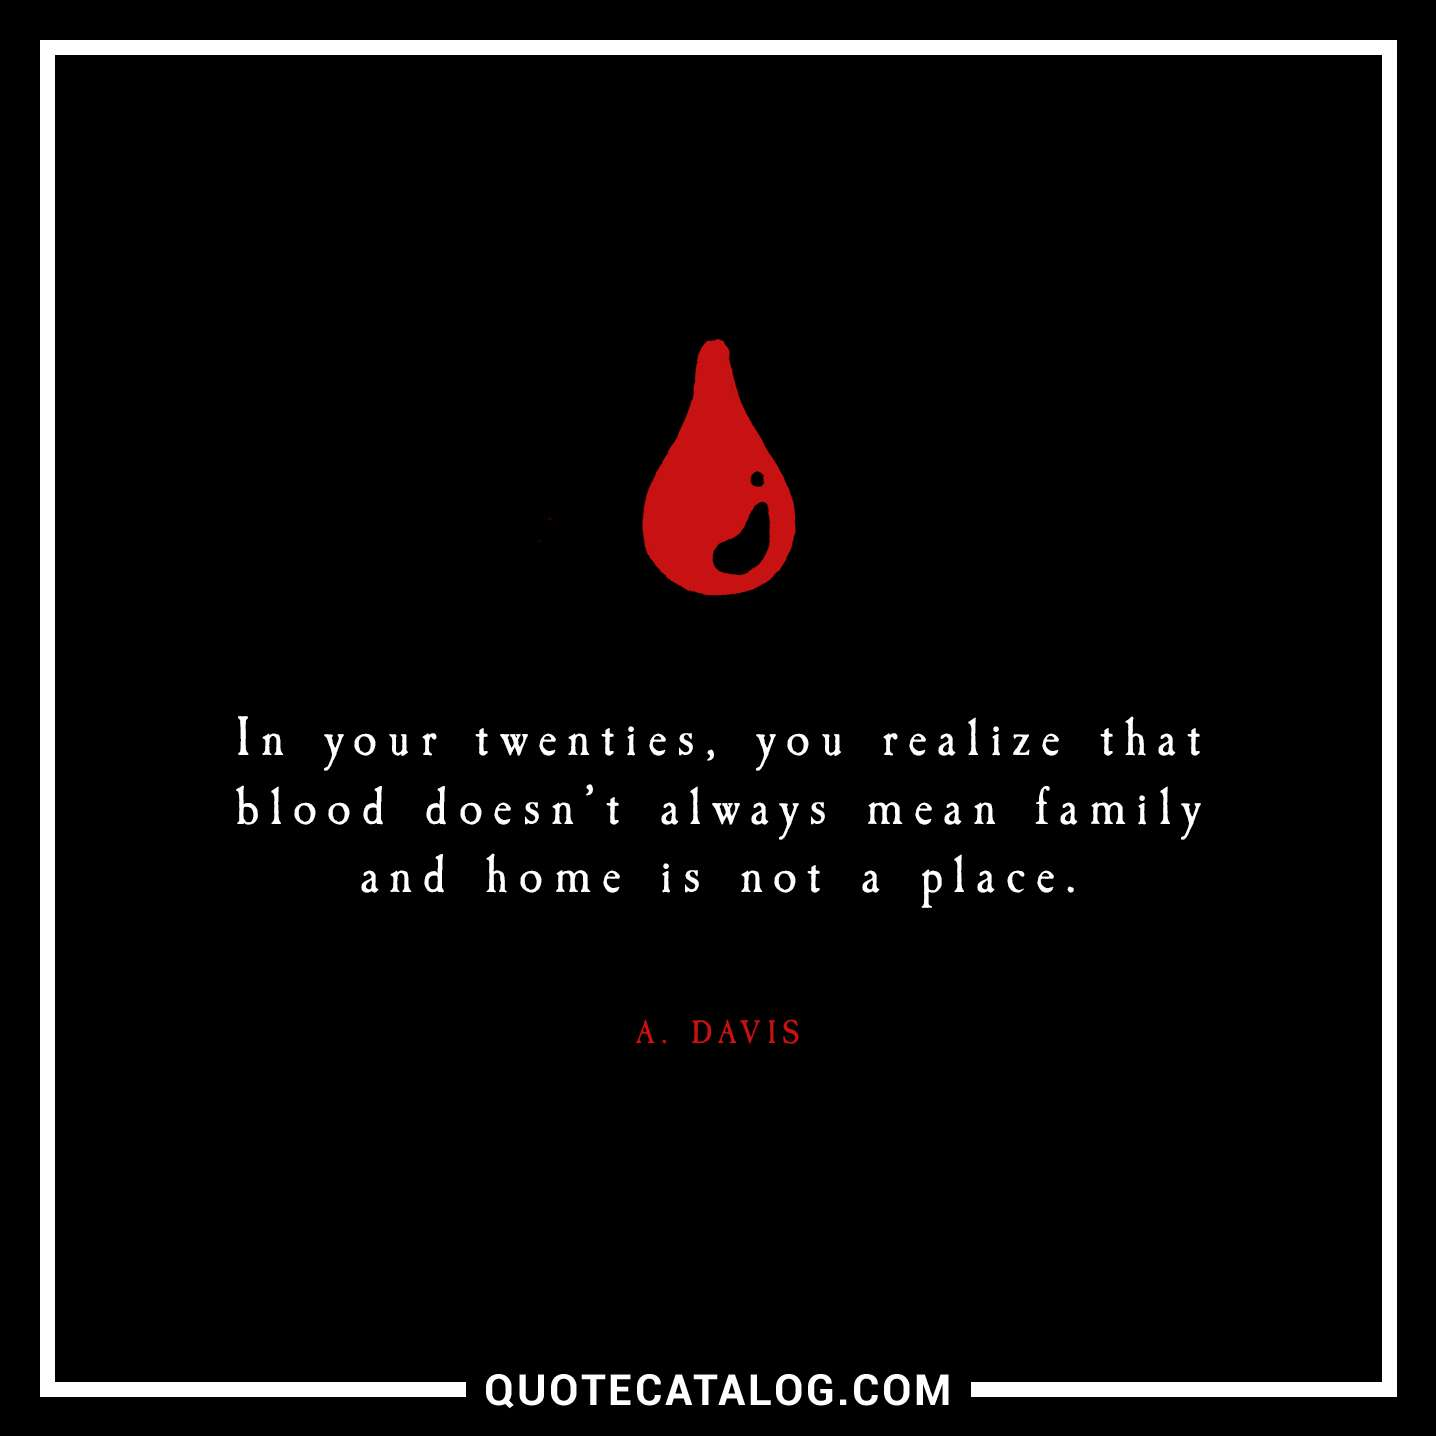 A. Davis Quote - In your twenties, you realize that blood ...